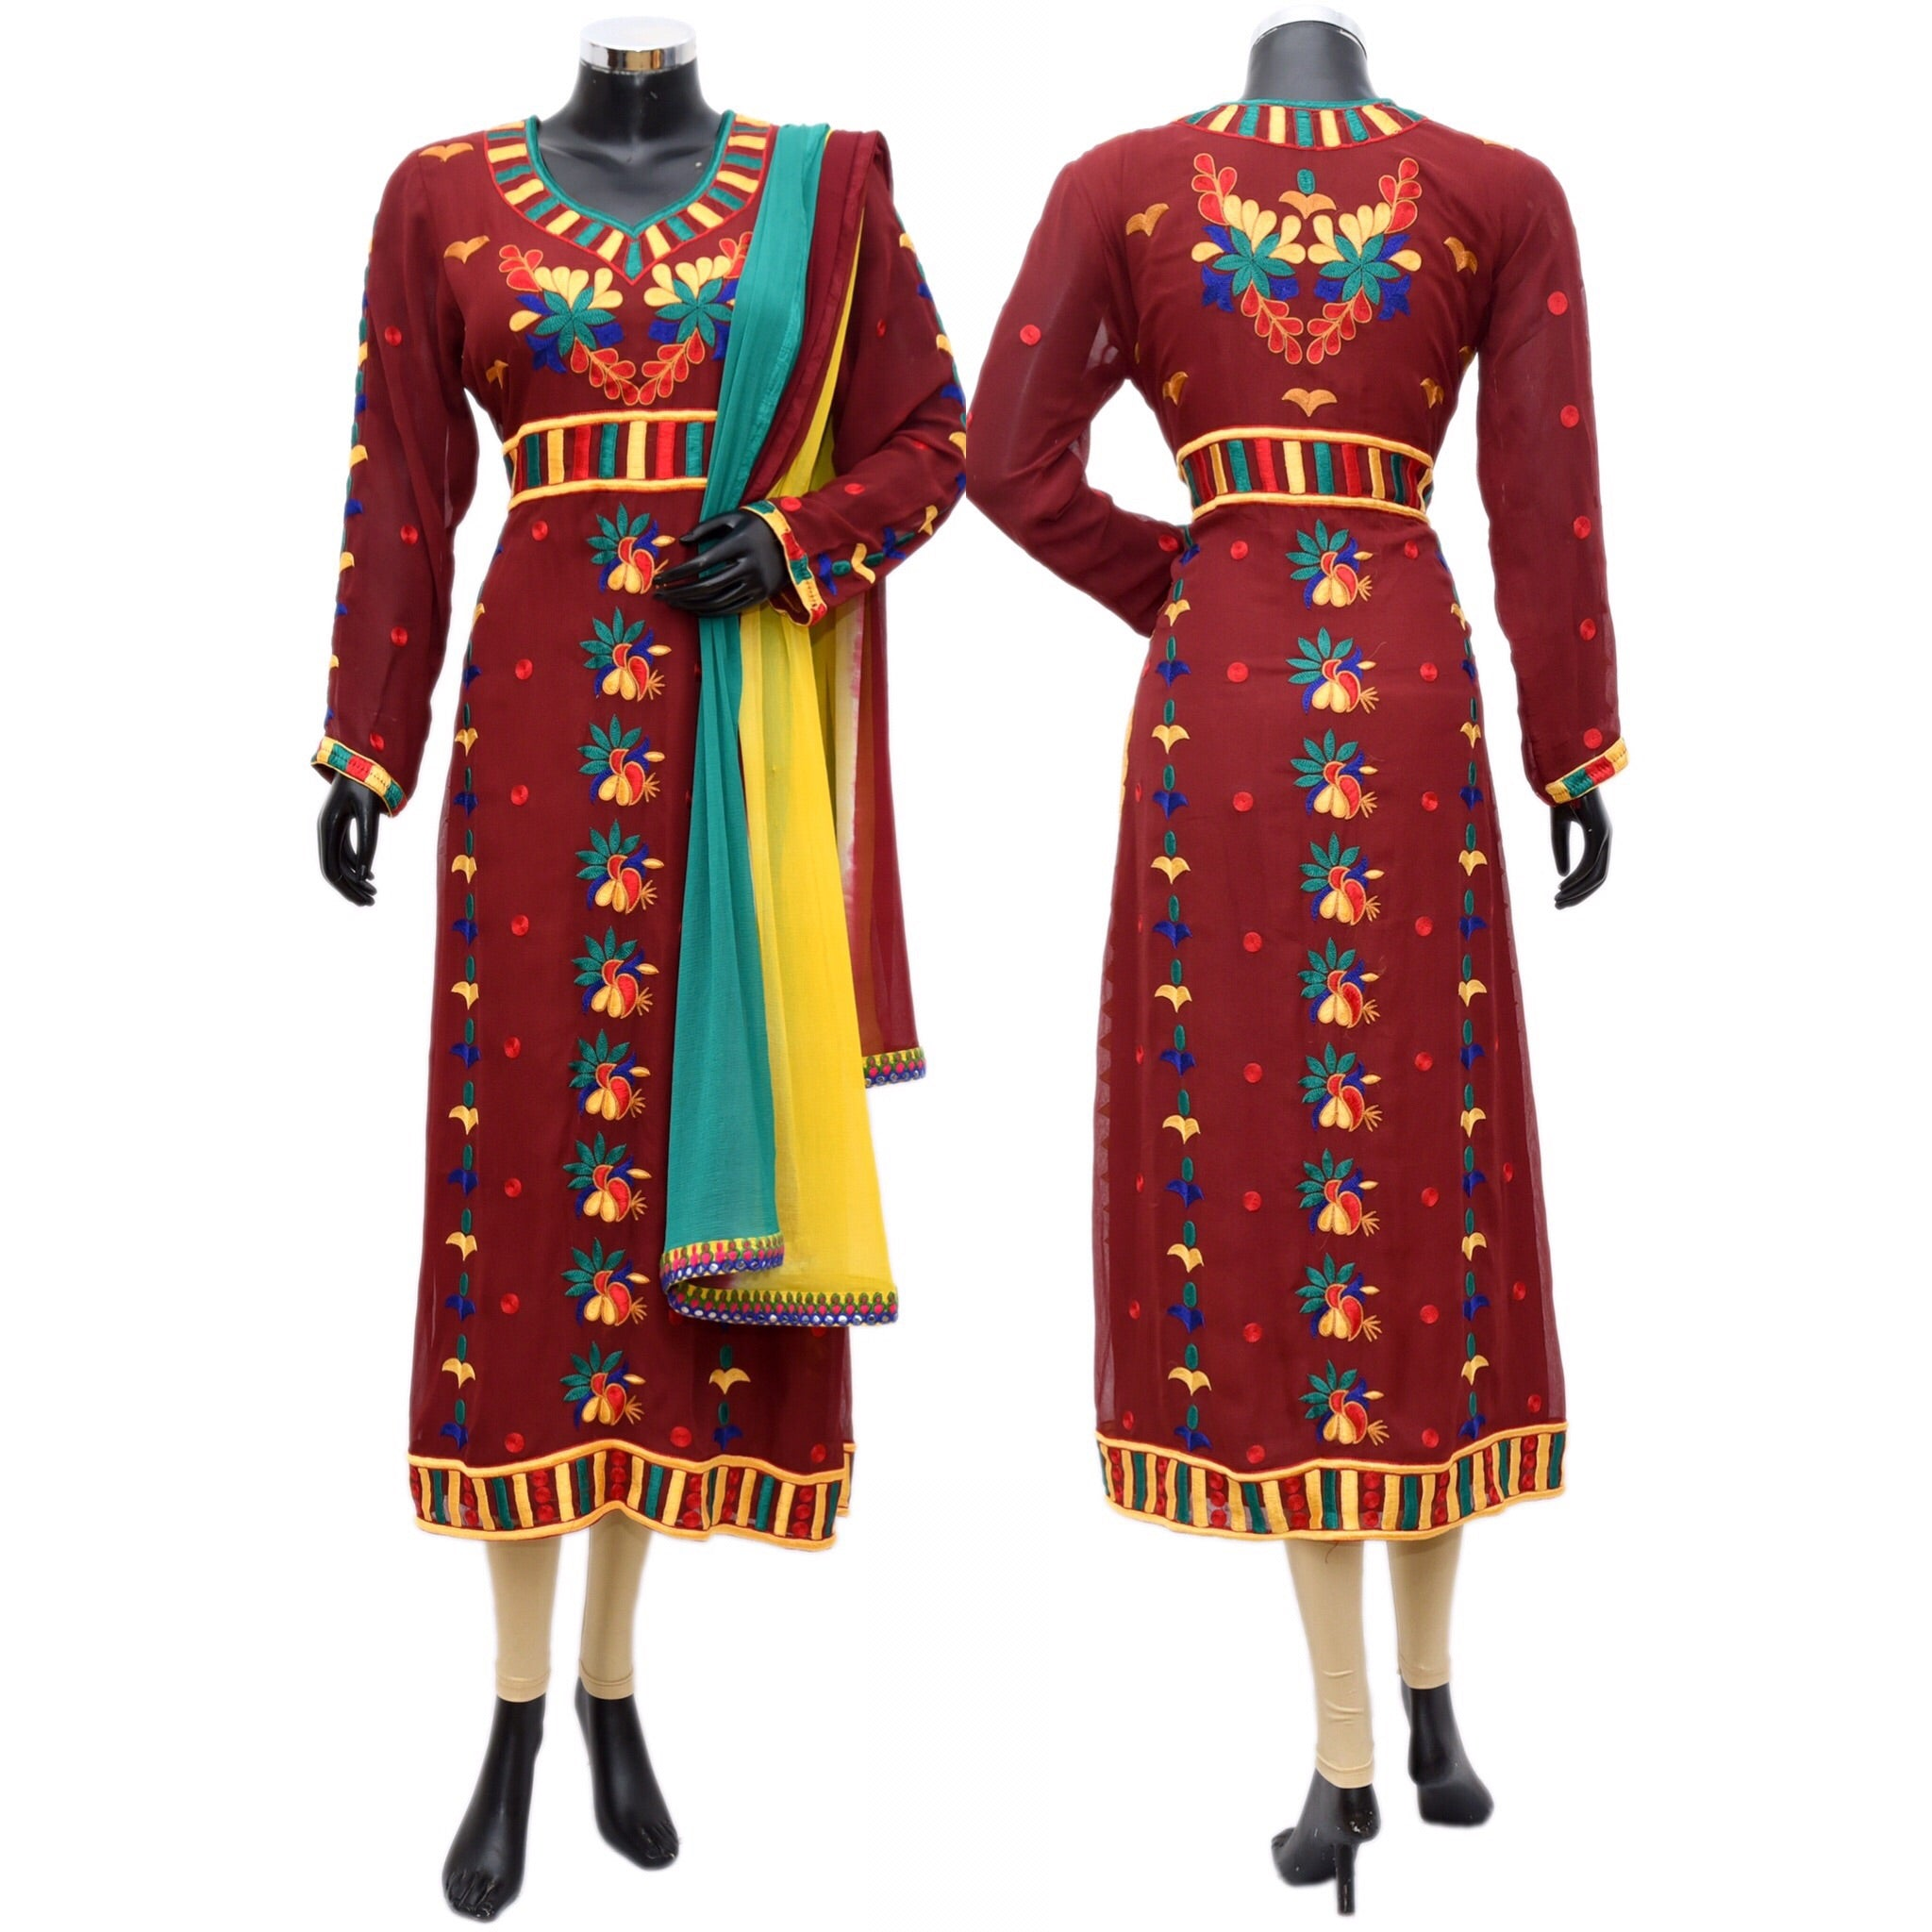 Colorful embroidered dress #fdn767-871